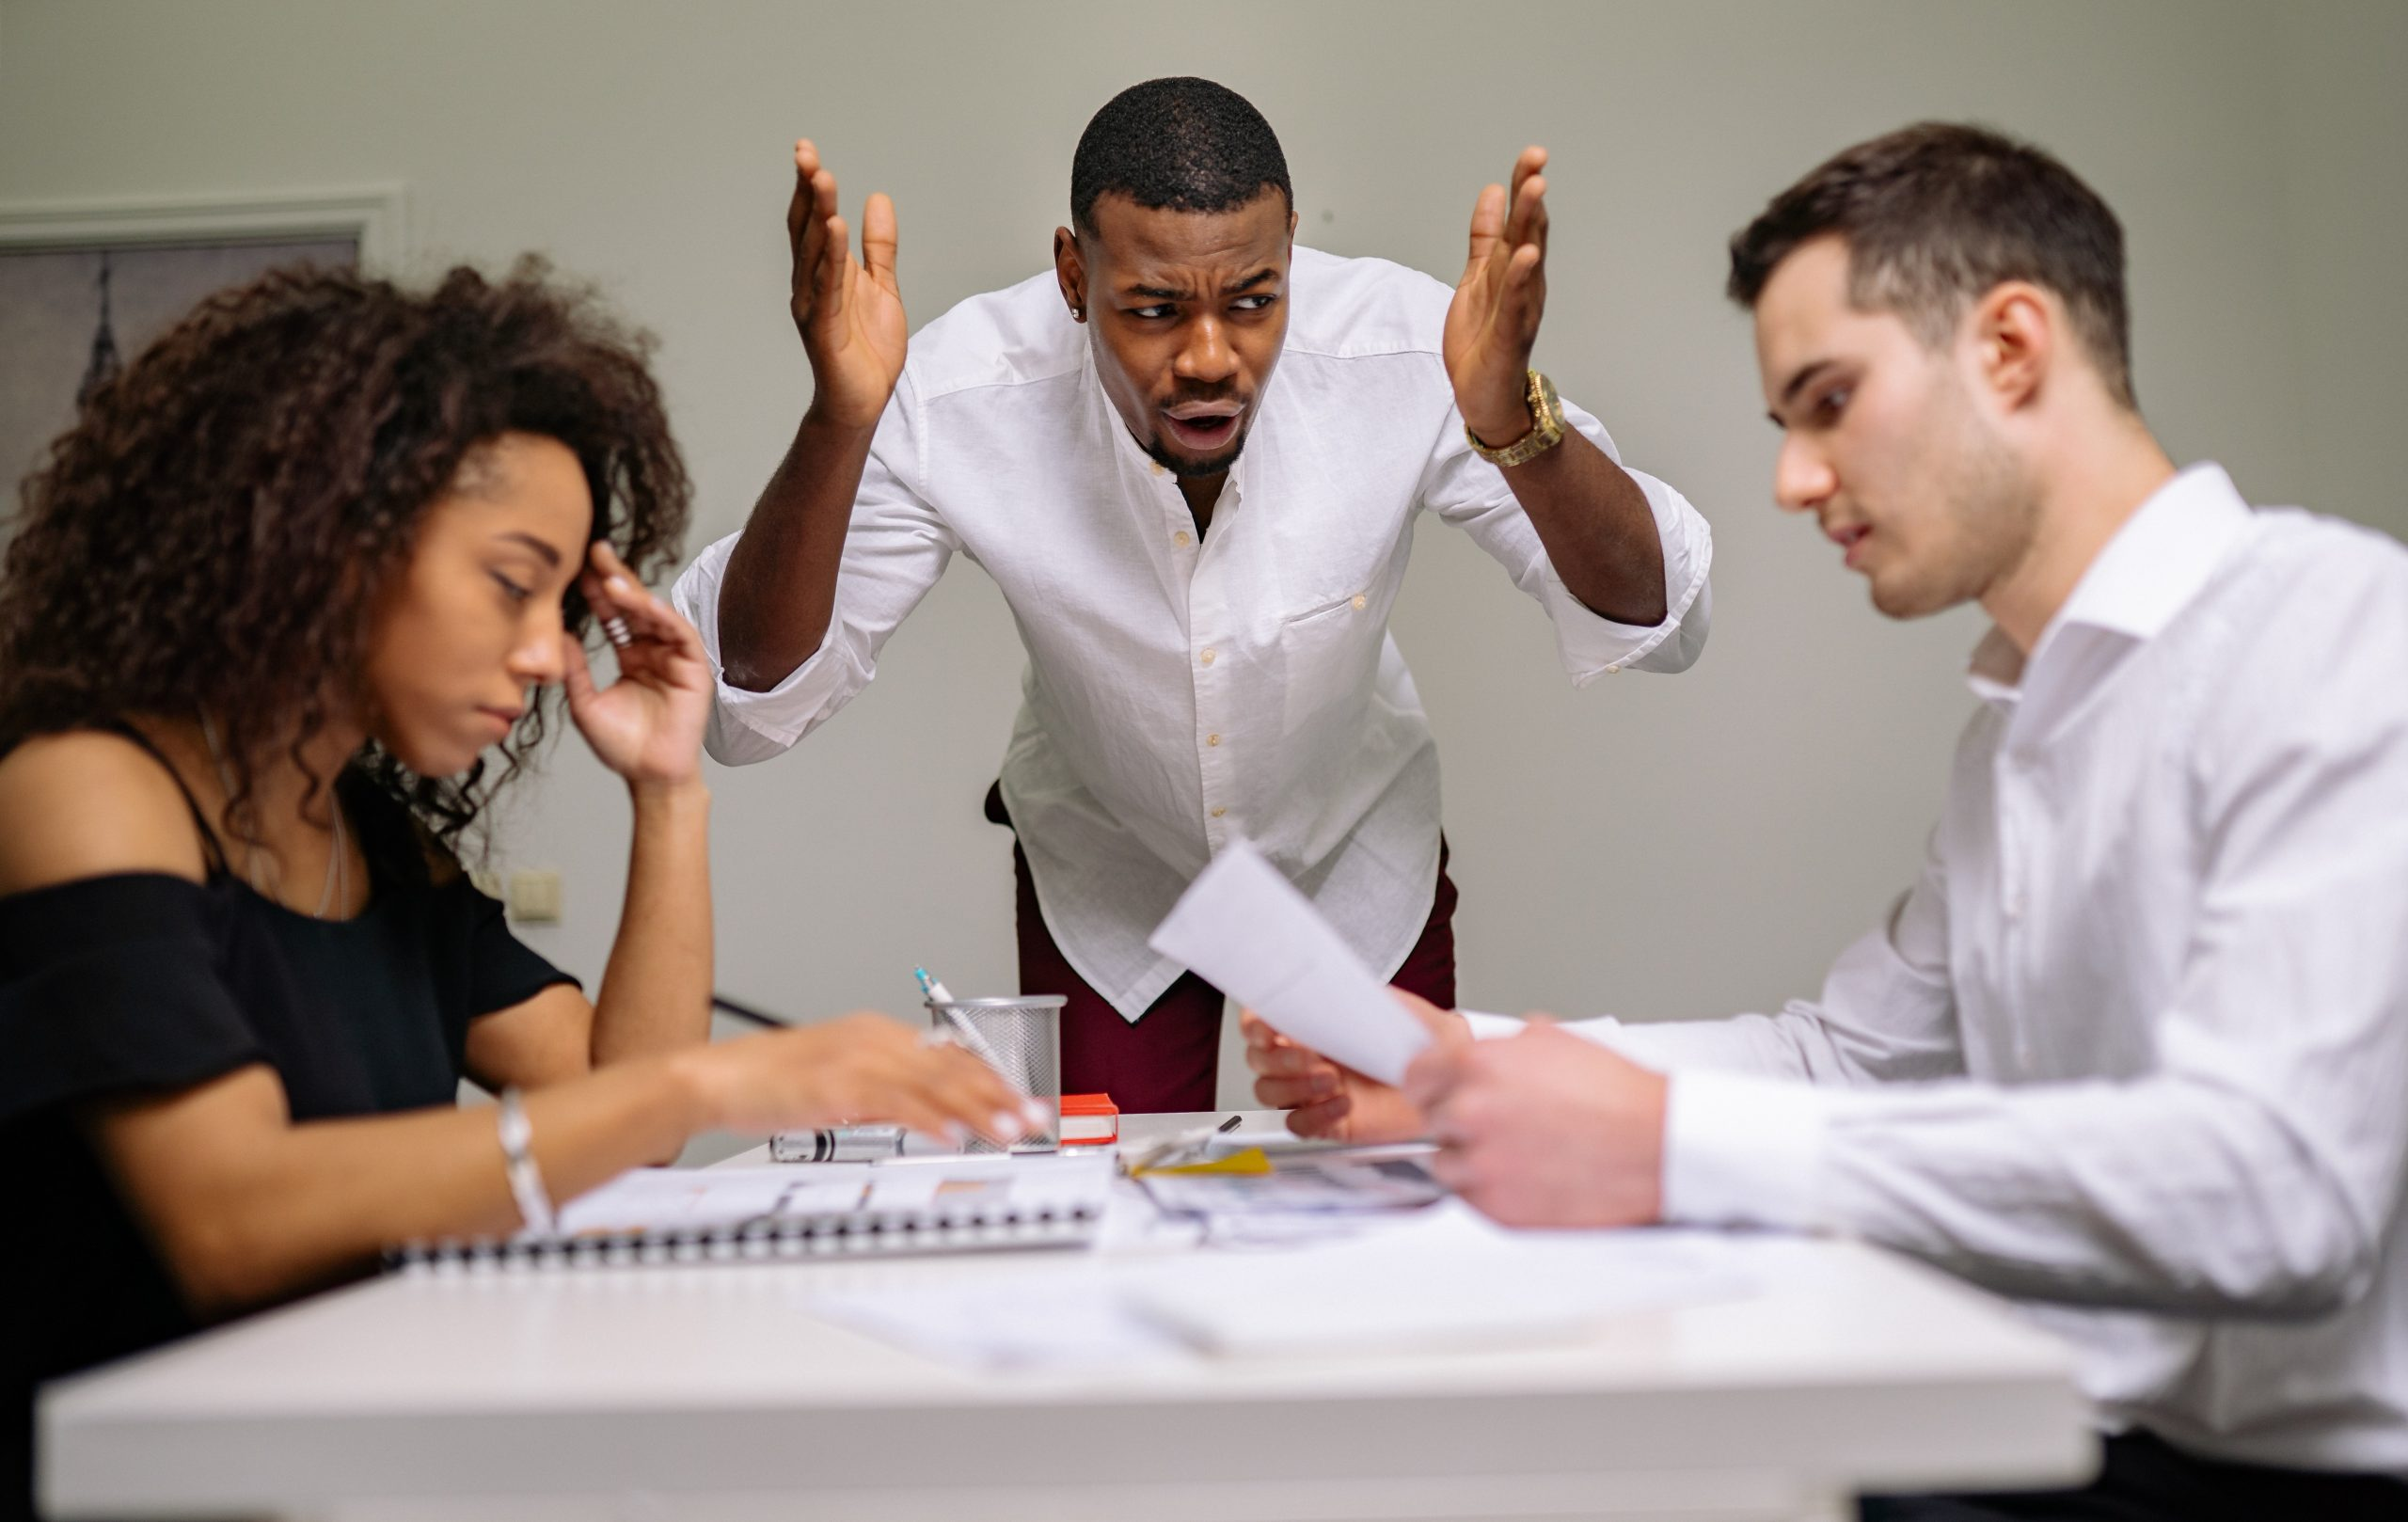 How Do You Report a Hostile Work Environment in Florida?